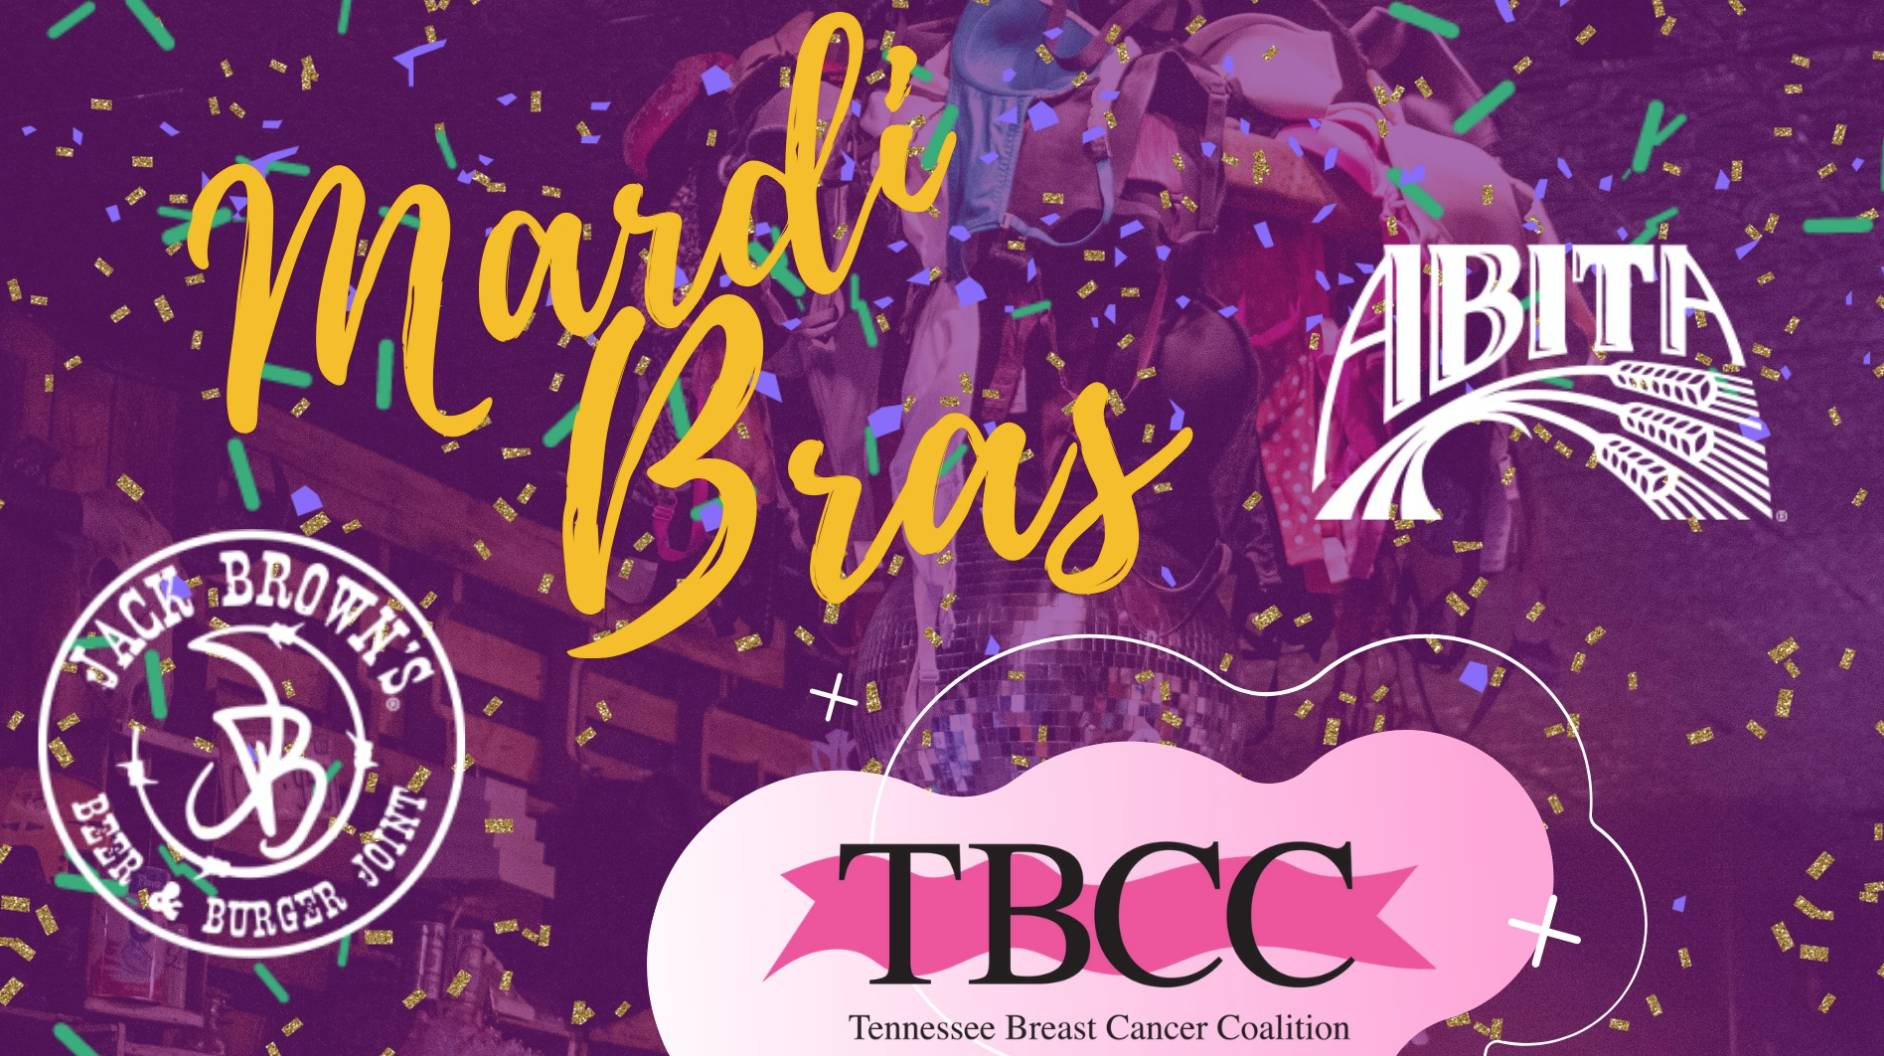 Mardi Bras with Abita!